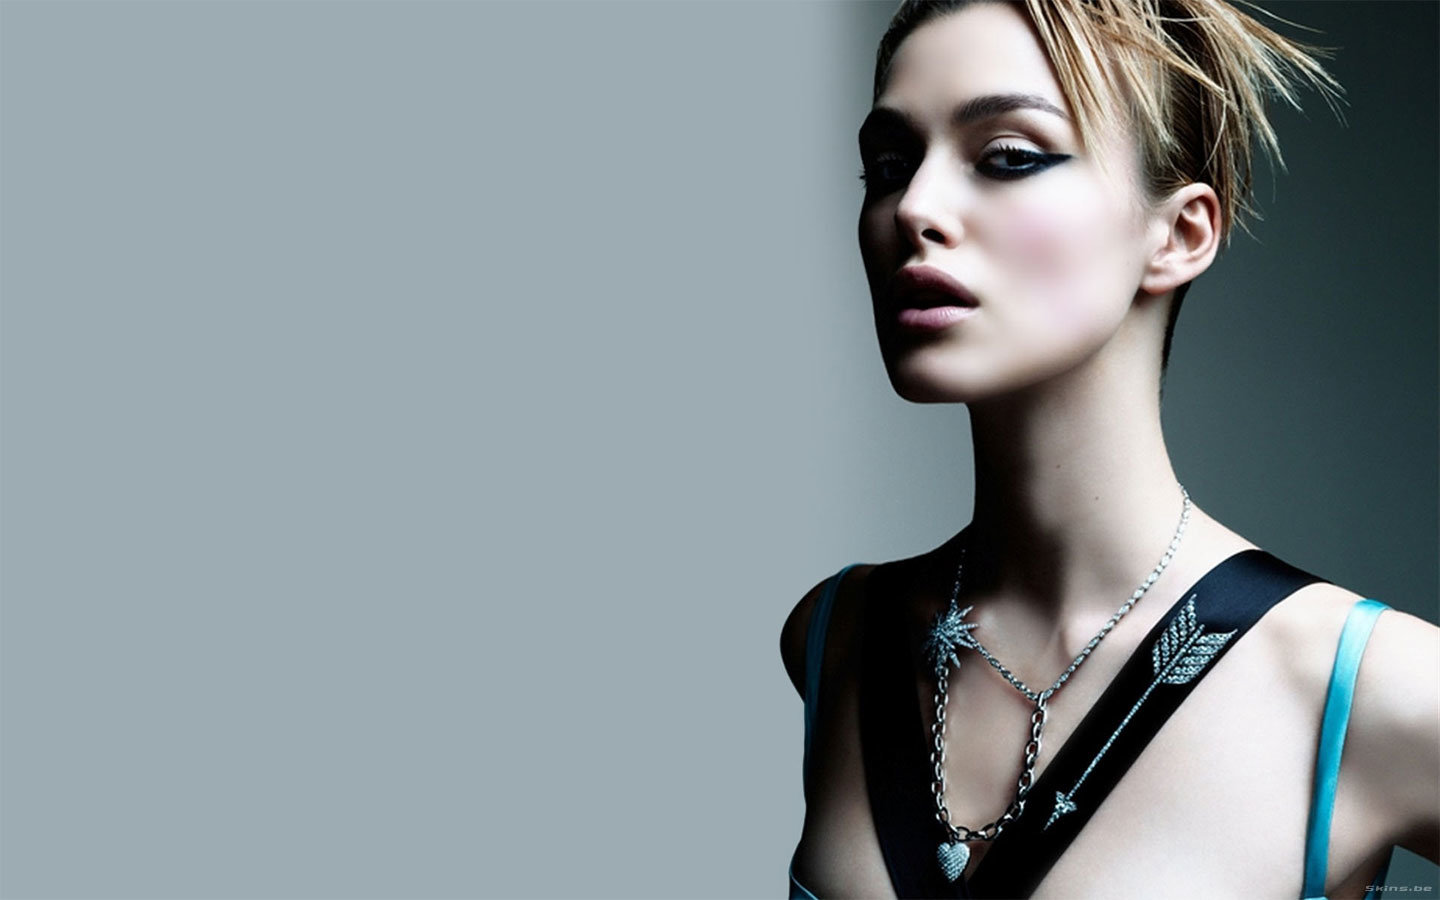 Free download Keira Knightley wallpaper ID:50292 hd 1440x900 for computer